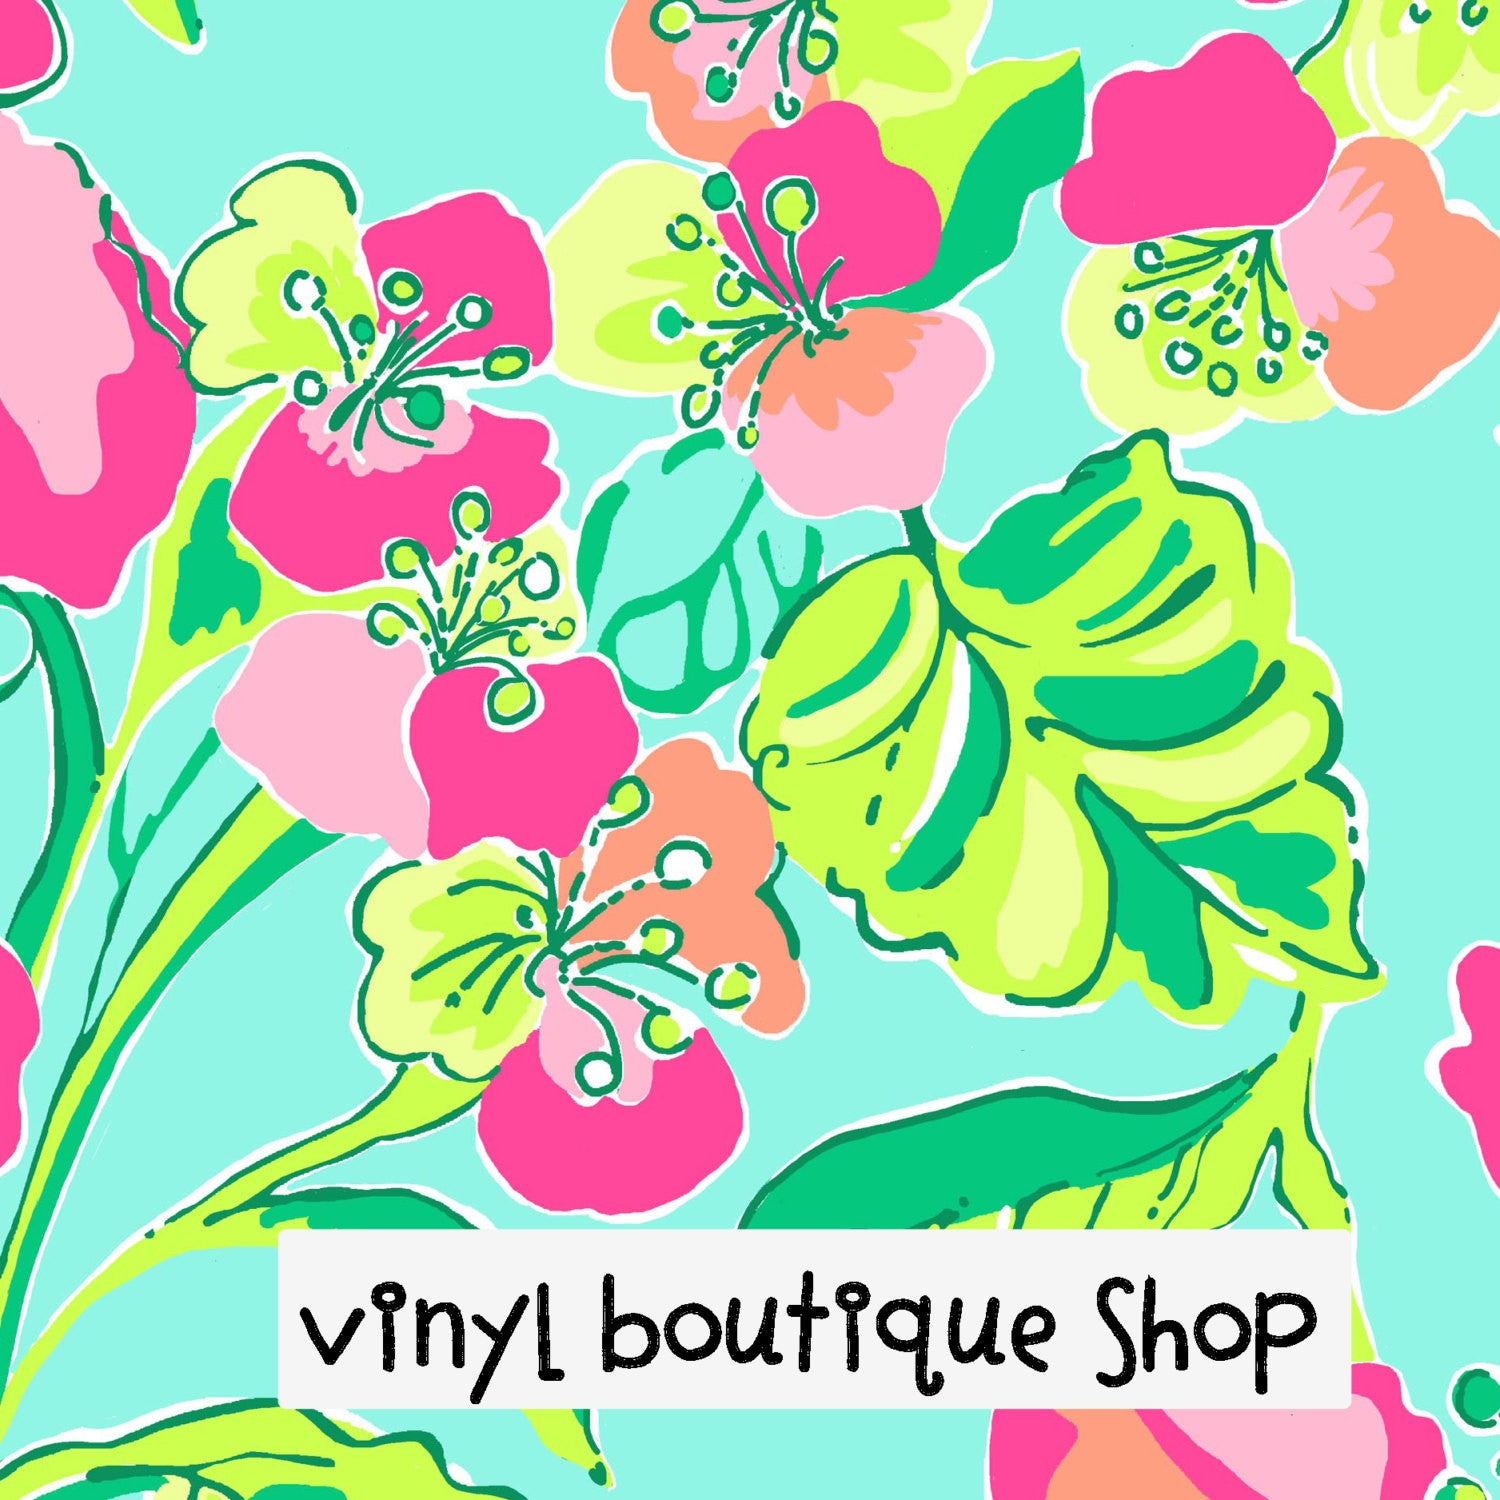 Island Cocktail Lilly Inspired Printed Patterned Craft Vinyl - Vinyl Boutique Shop